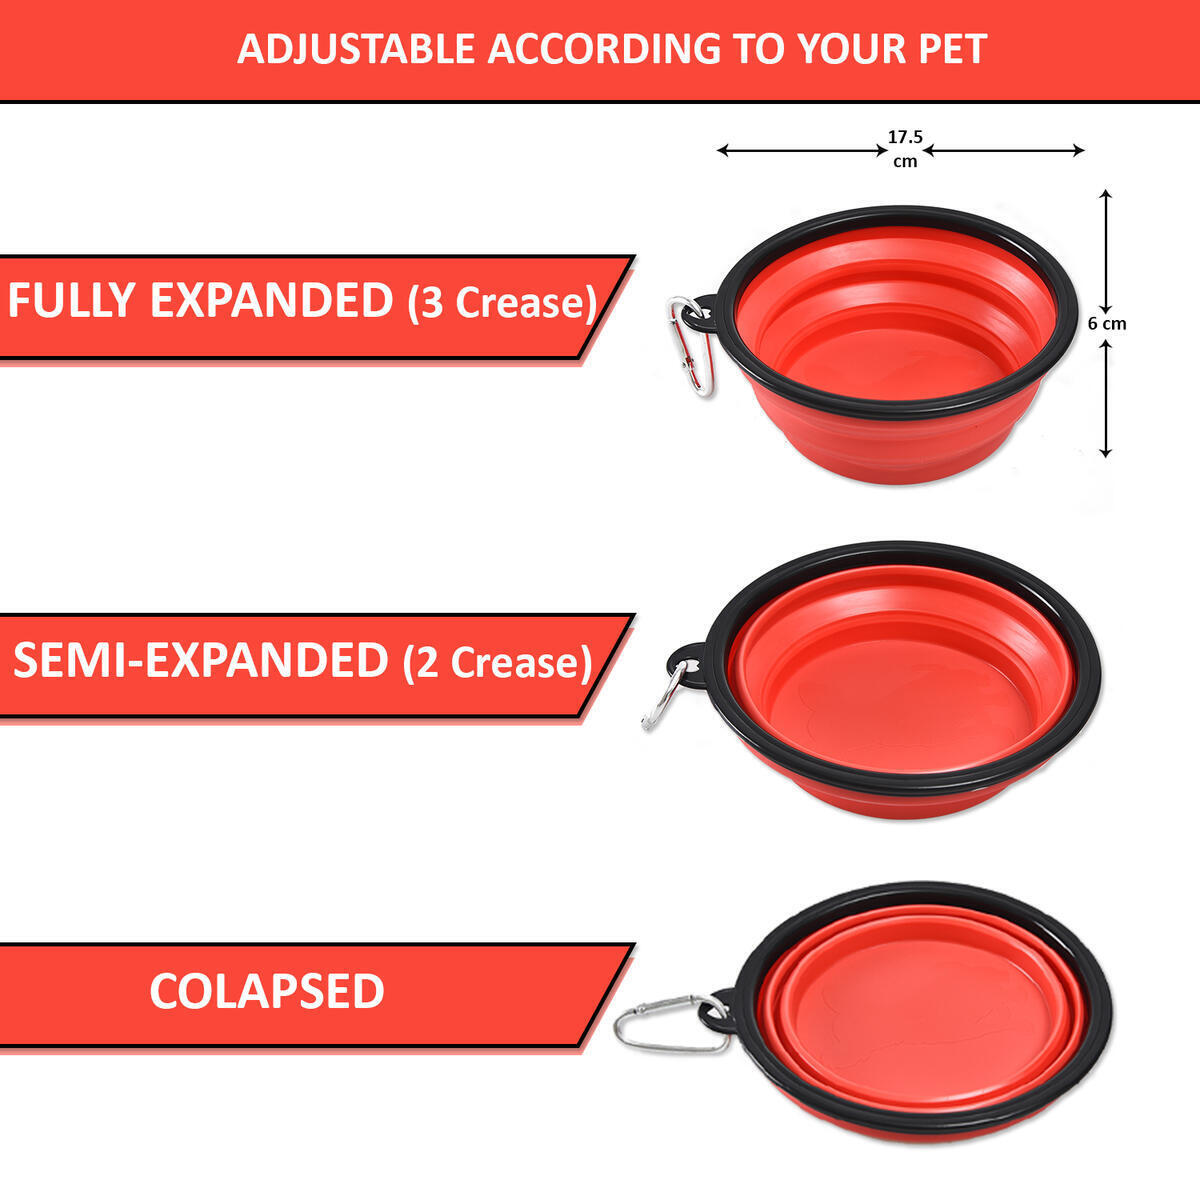 BUDDING Collapsible Dog Bowl for Travel – 34 oz (1000 ml) Water & Food Feeding Foldable Bowl – Best for Big, Medium & Small Size Dogs – Silicone Dog Dishes Food Bowl with Carabiner Clip (Red)